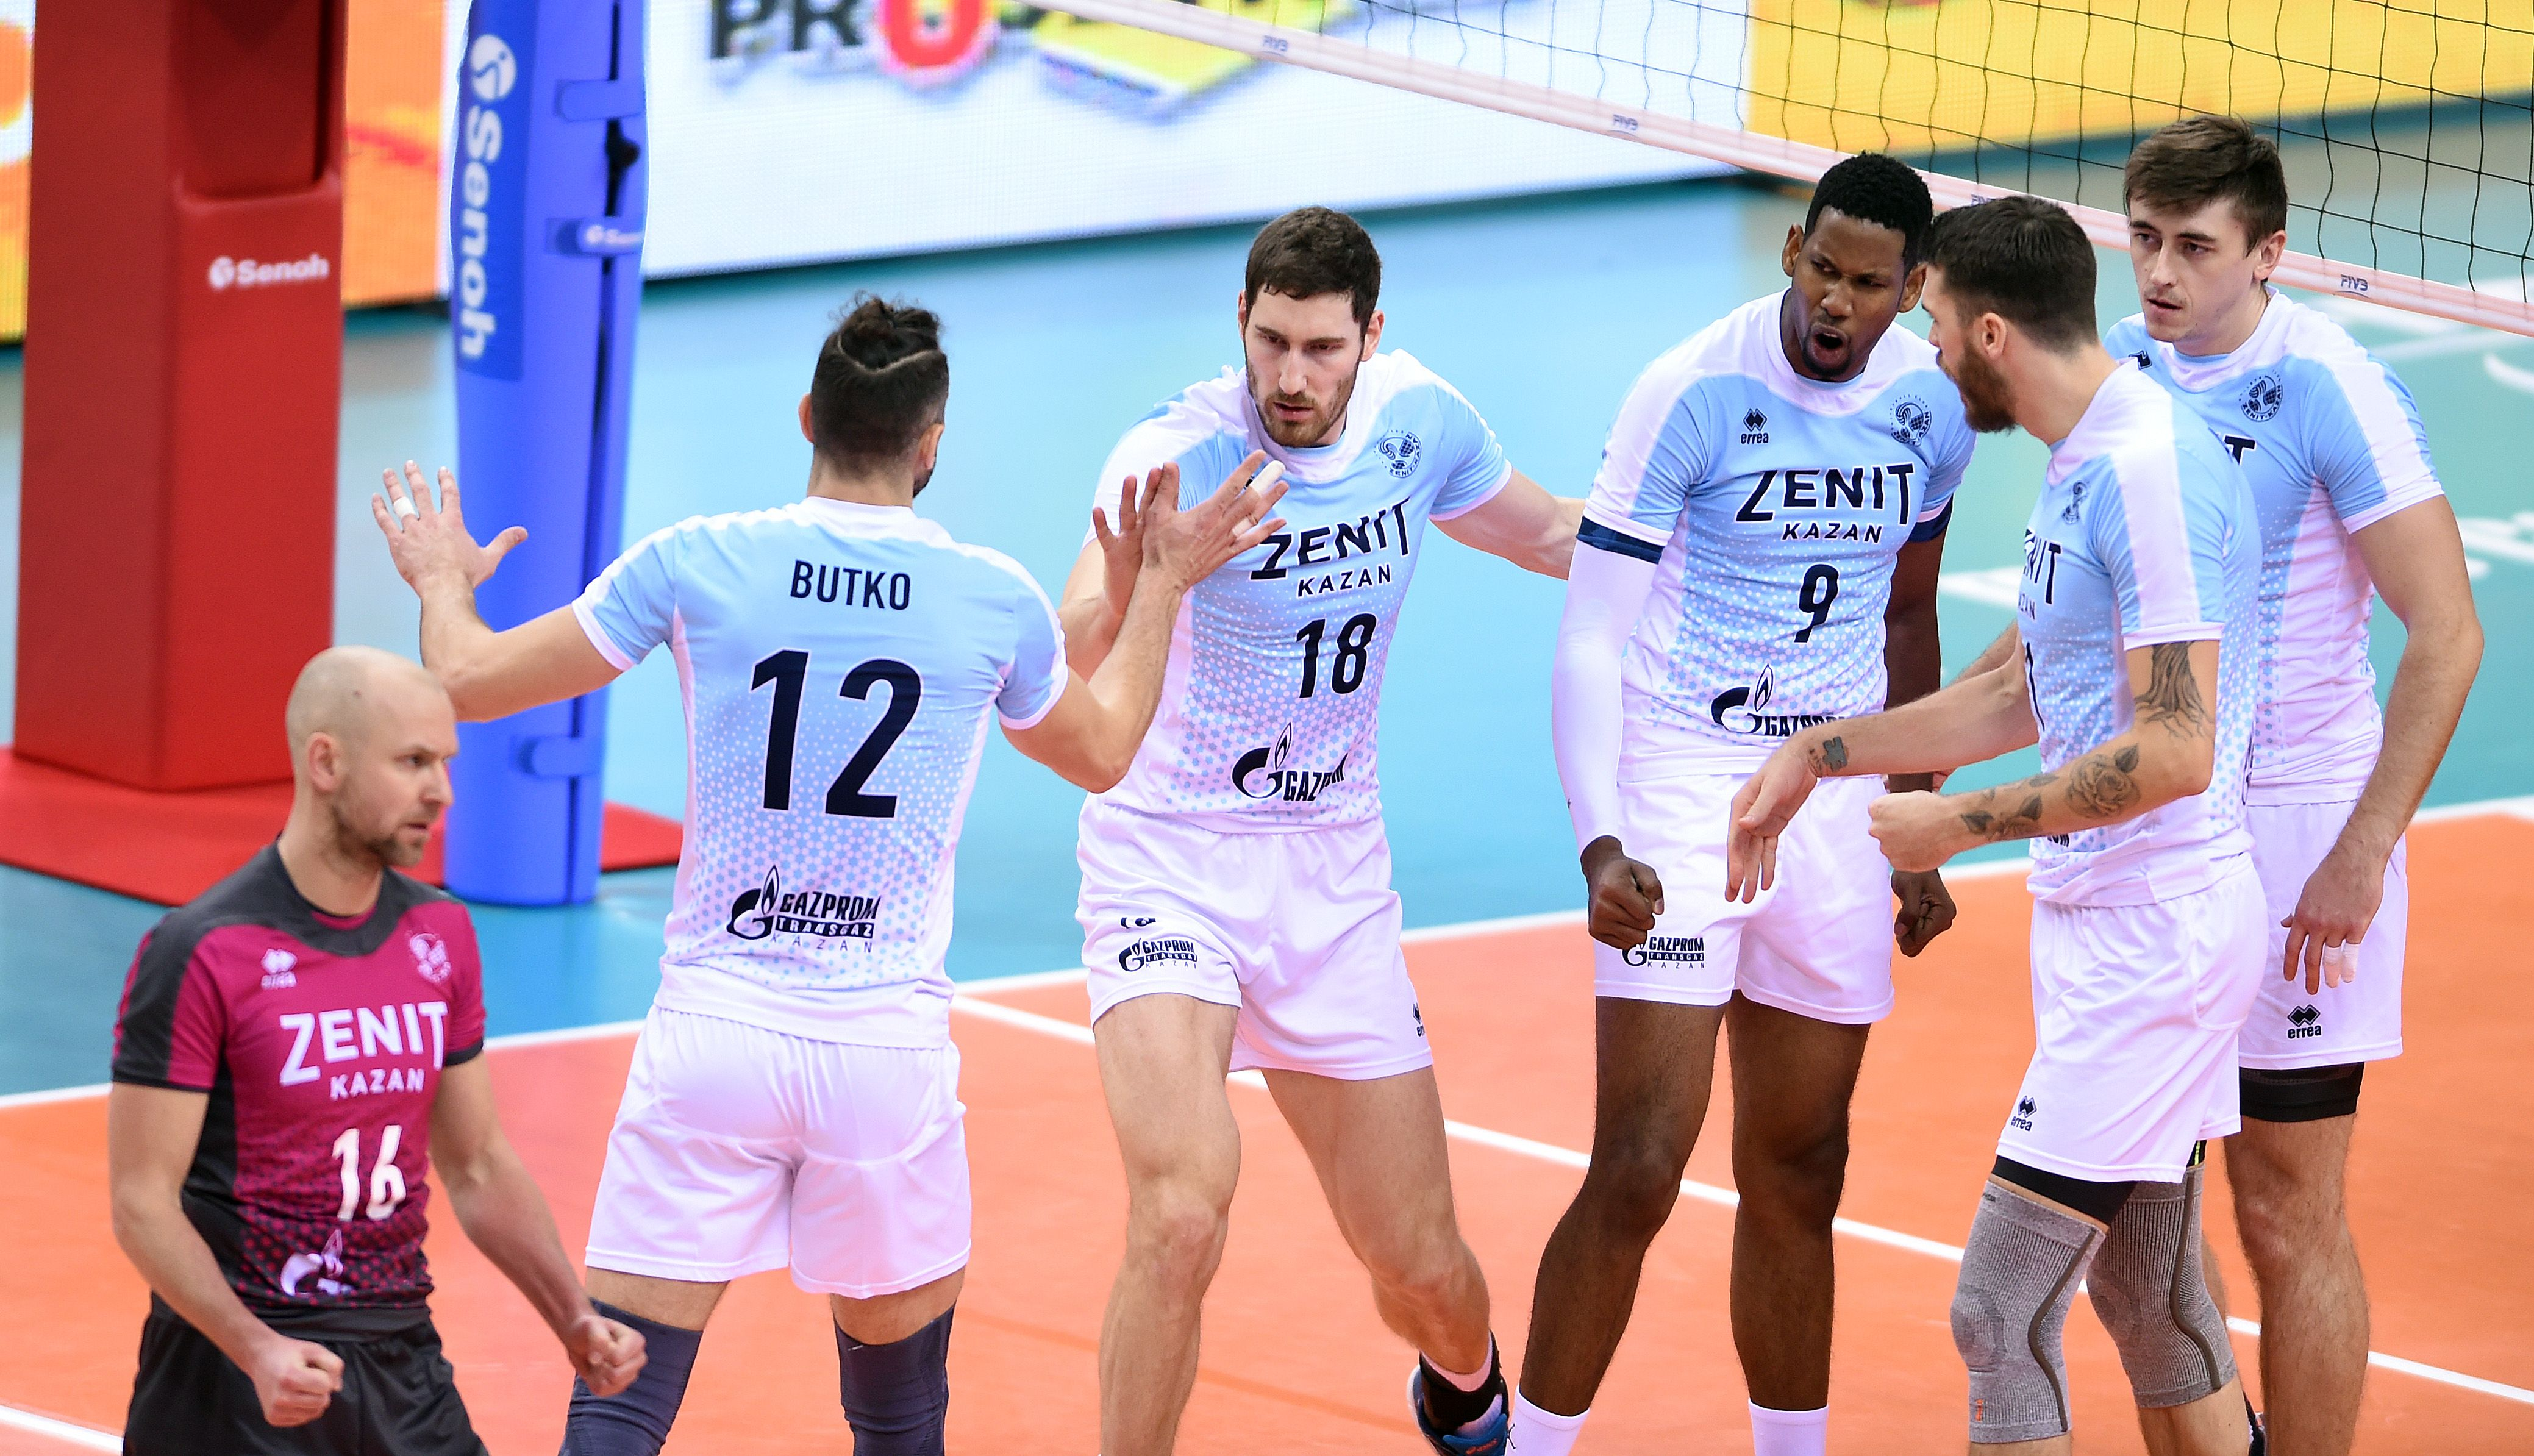 Zenit Kazan And Lube Civitanova To Face Off In Fivb Club Wch Finals Volleyball News Kazan Face Off